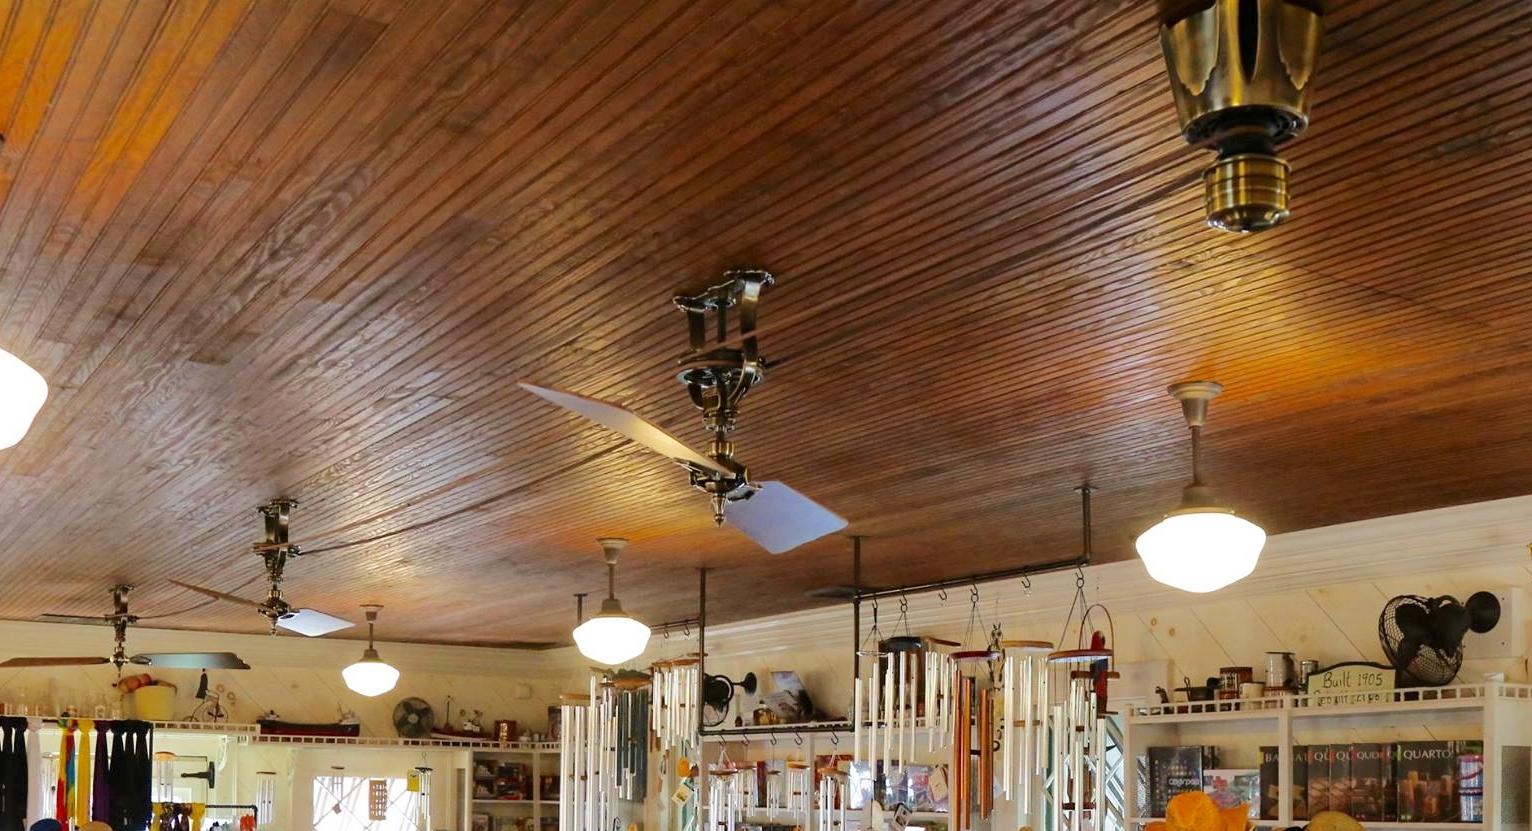 Belt Driven Ceiling Fans Vintage Ceiling Fan For Lakeside Historic Building Blog